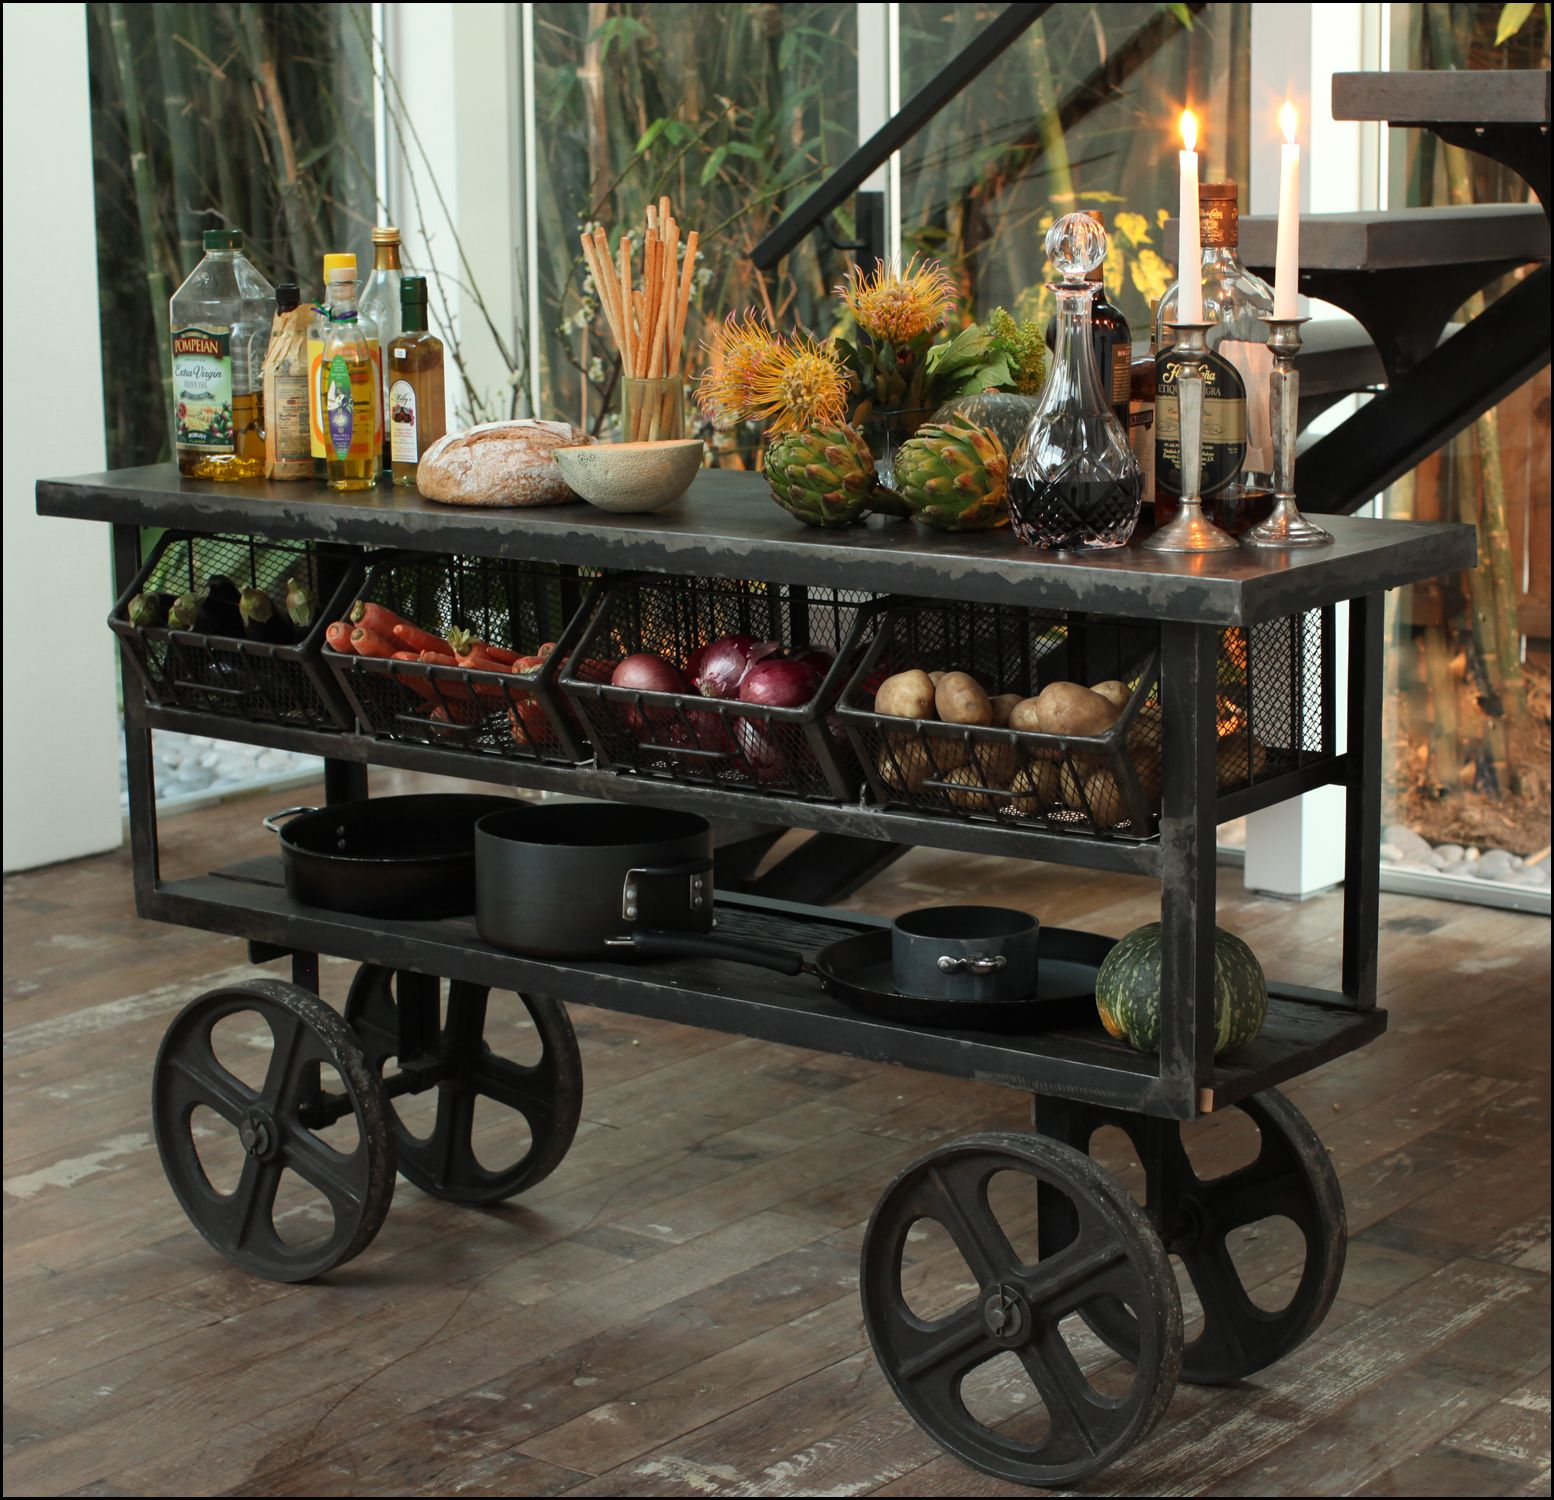 Rustic kitchen trolley cart metal and wood kitchen trolley cart rustic kitchen trolley cart metal and wood kitchen trolley cart taramundifurniture geotapseo Choice Image